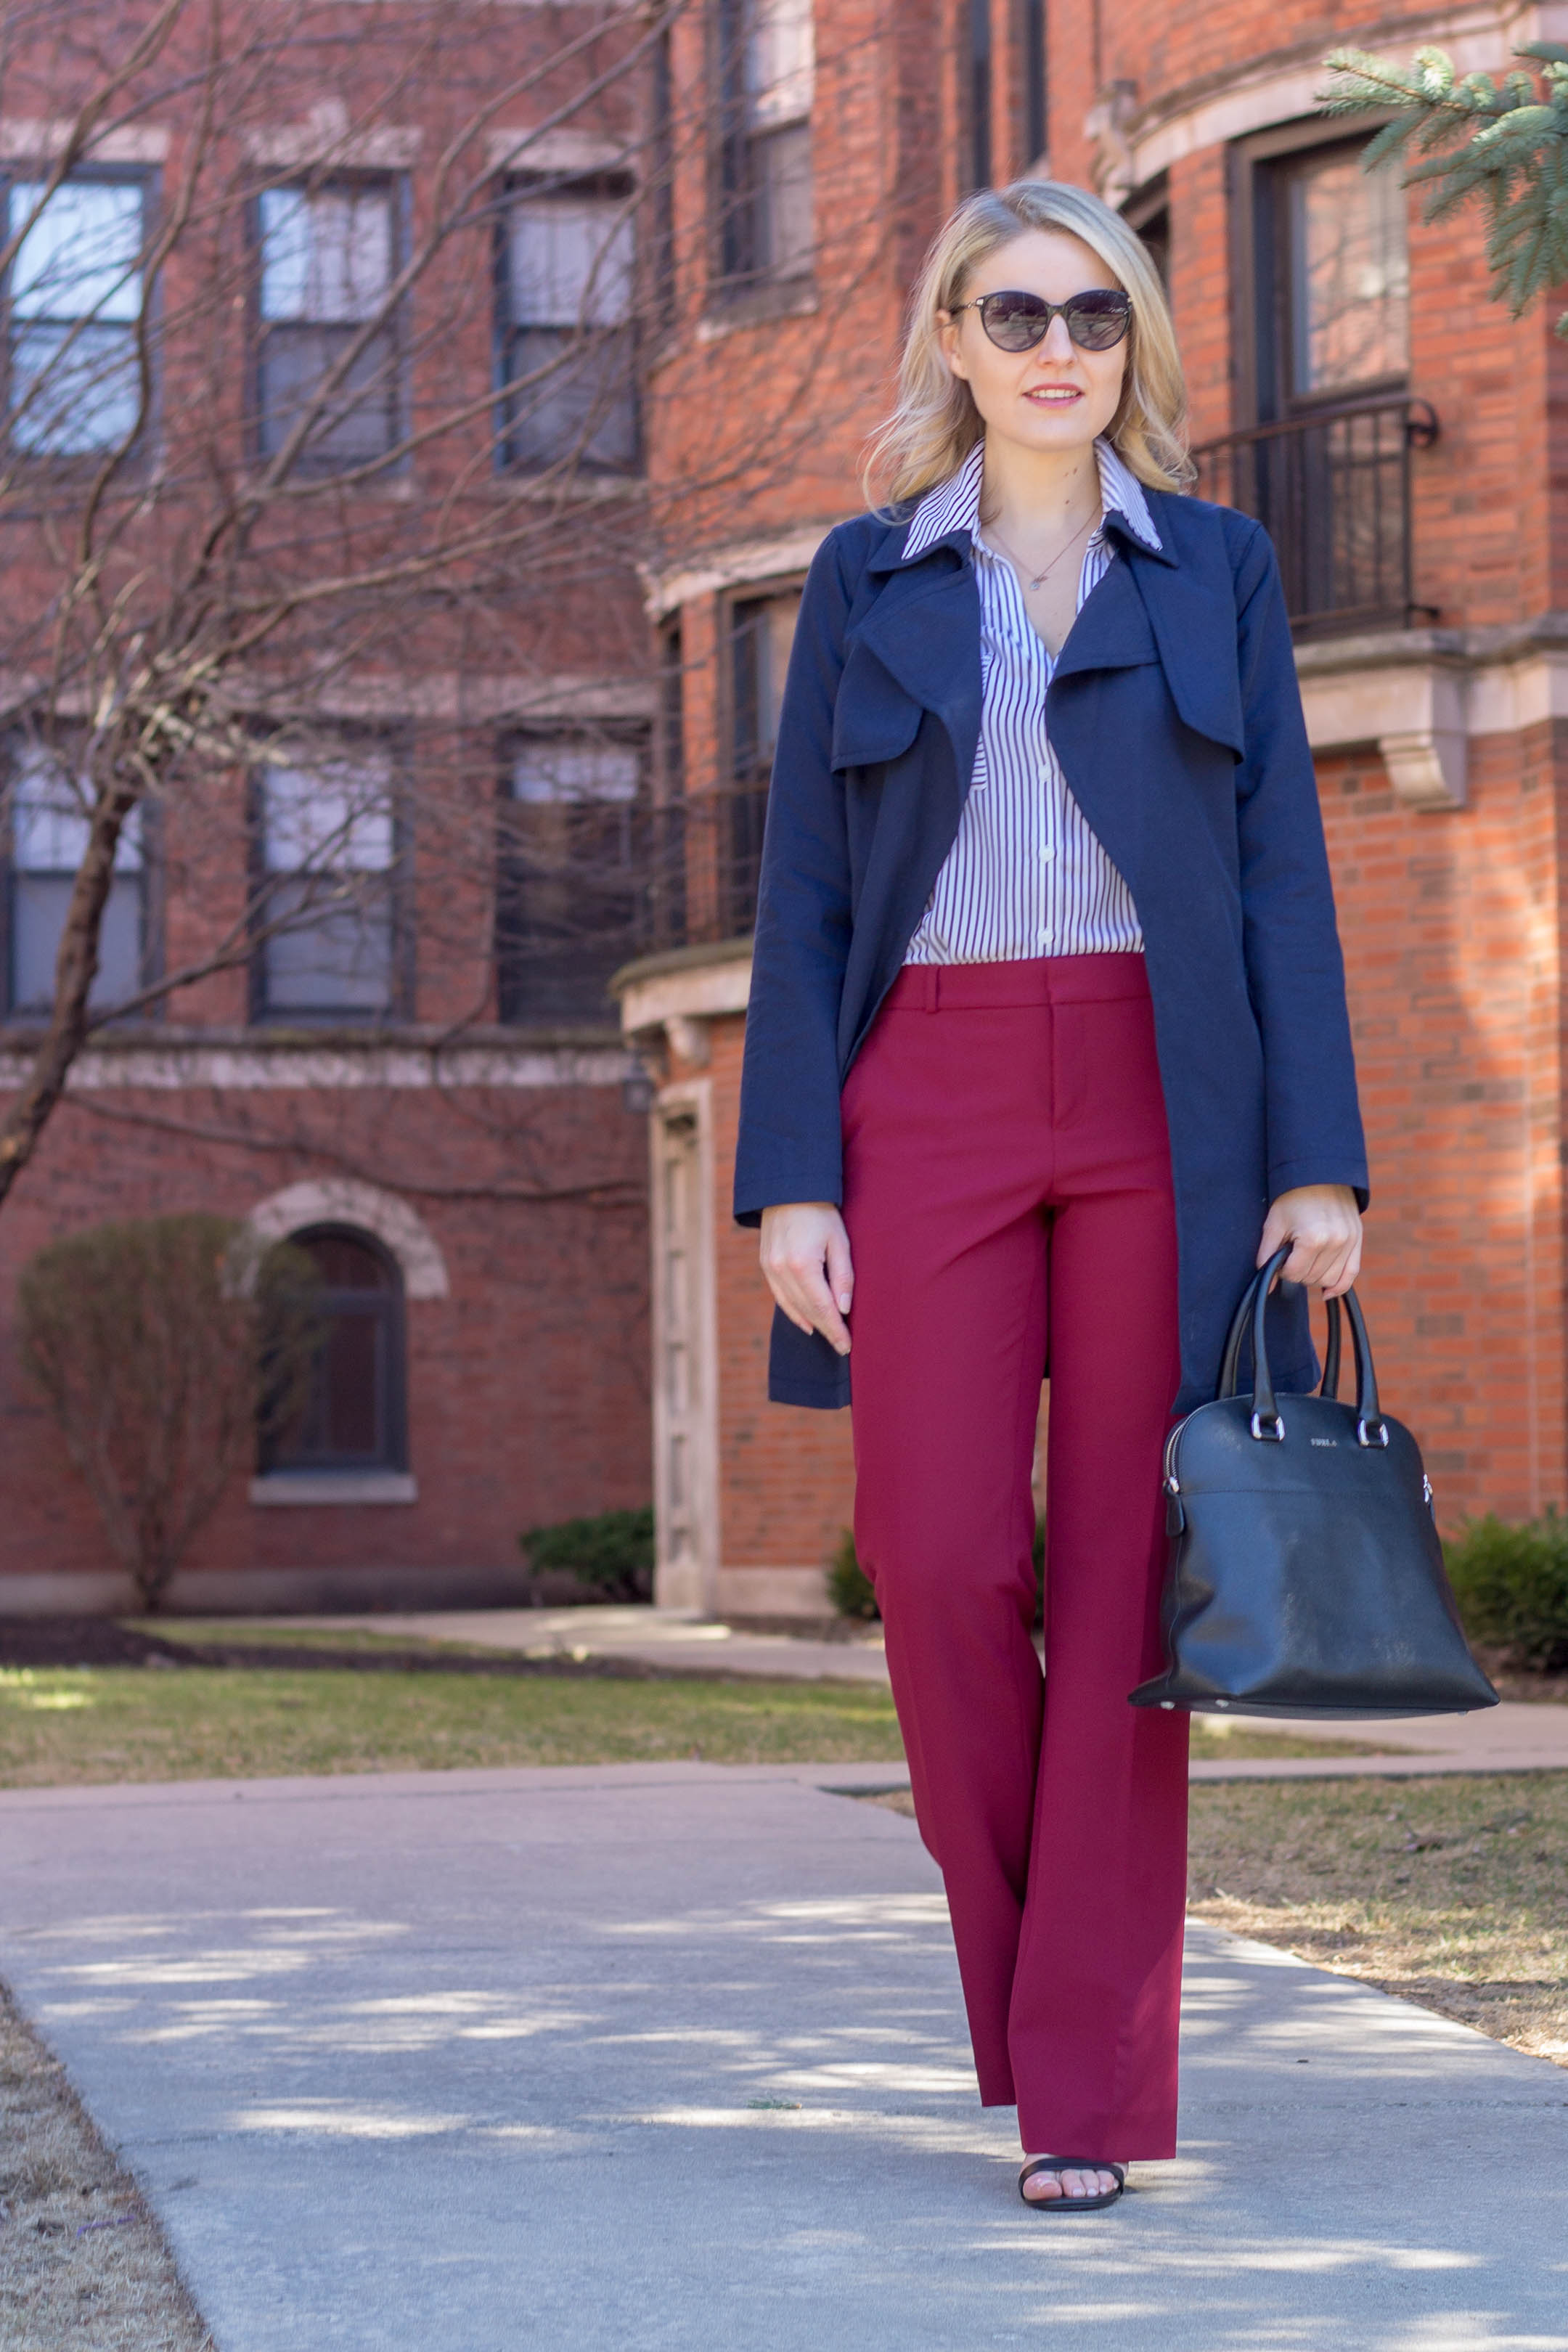 A banana republic cotton trench will be your new spring staple